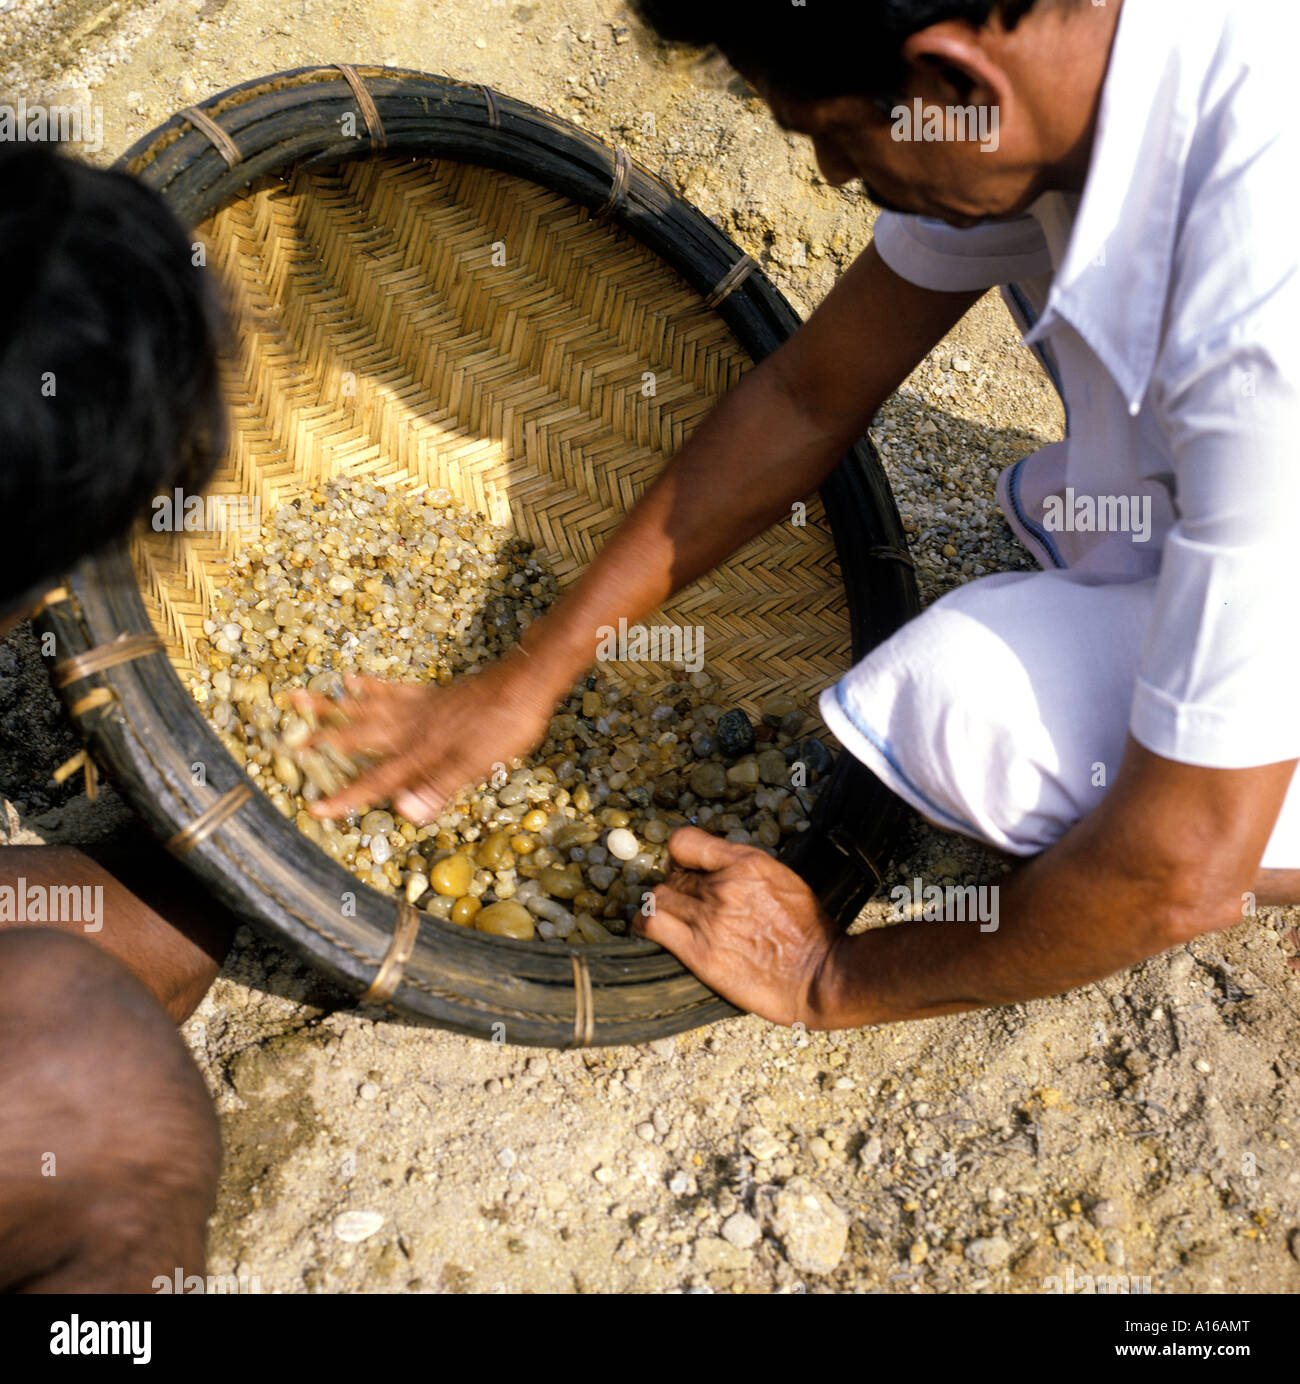 download workers lanka sri gemstone stone work sapphire area of in mining mine stock men image ratnapura